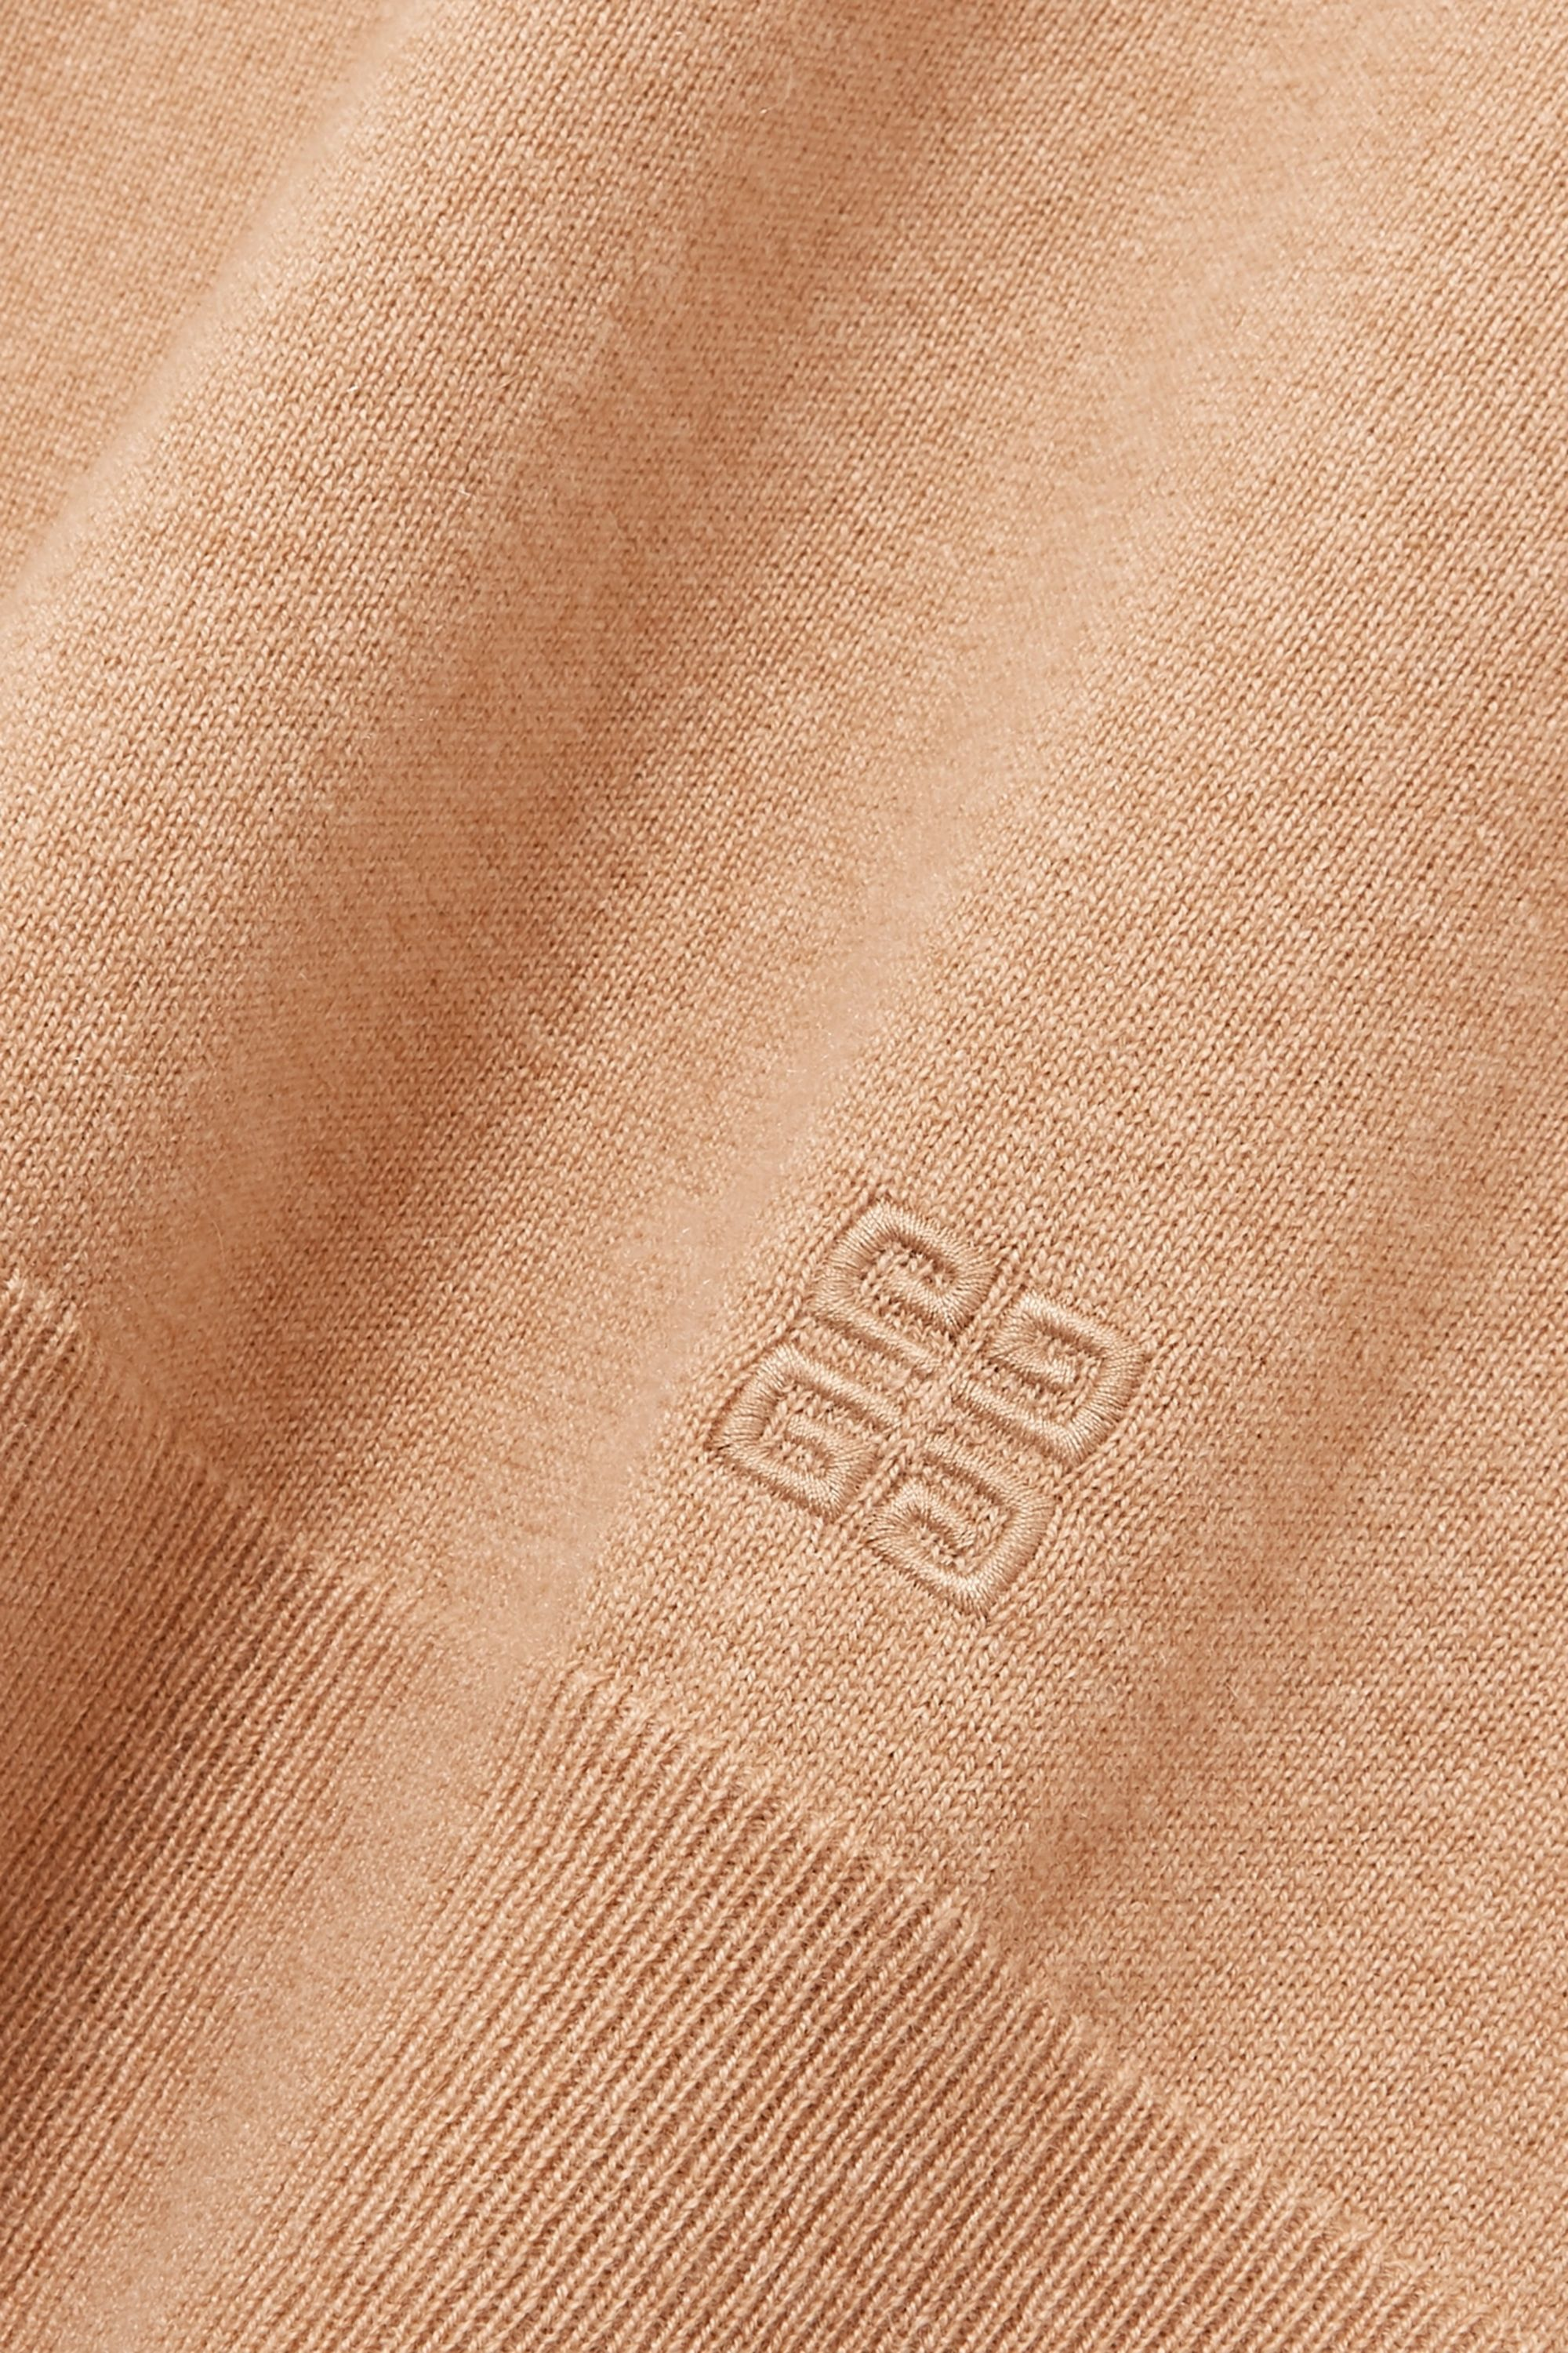 Givenchy Embroidered cashmere turtleneck sweater